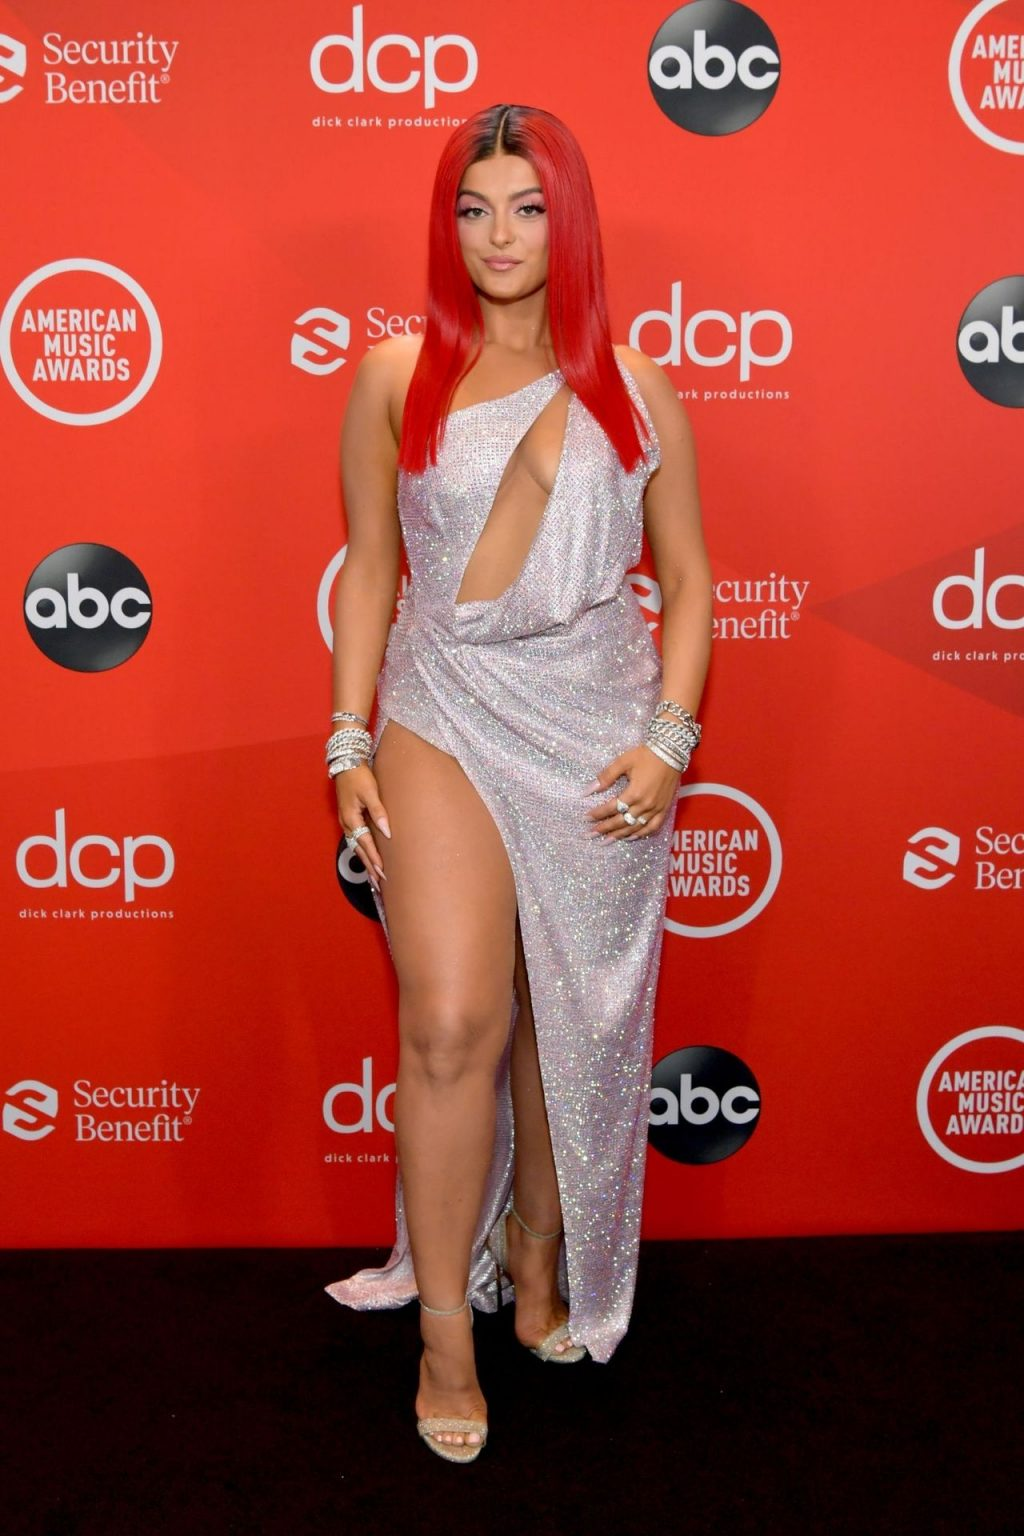 Bebe Rexha Shows Off Her Curves at the 2020 American Music Awards (31 Photos)